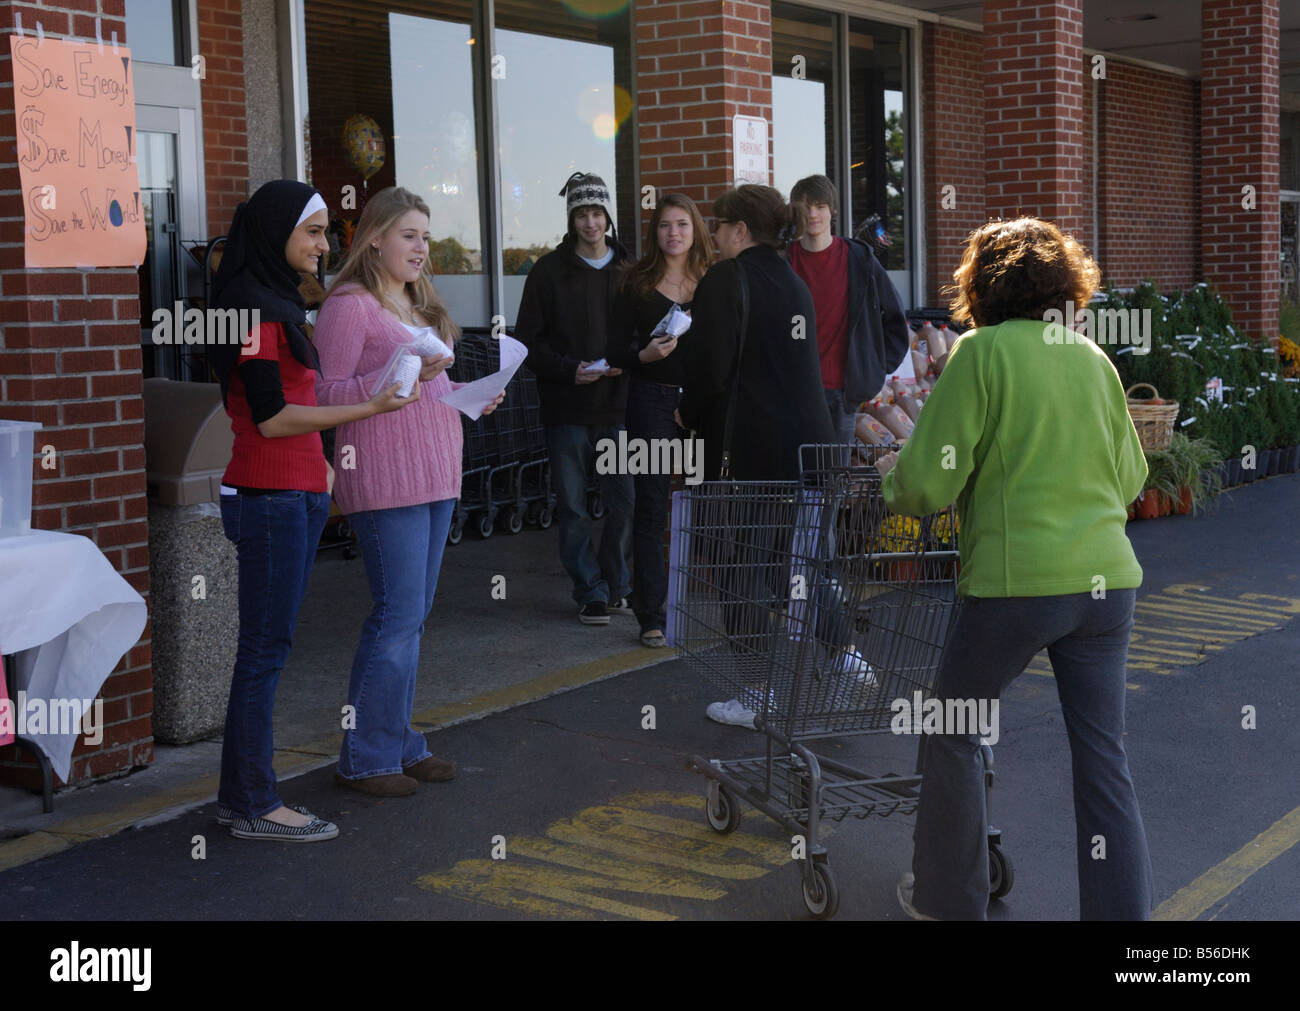 Teenage girls giving away free energy efficient light bulbs to people for an environmental community service project Stock Photo